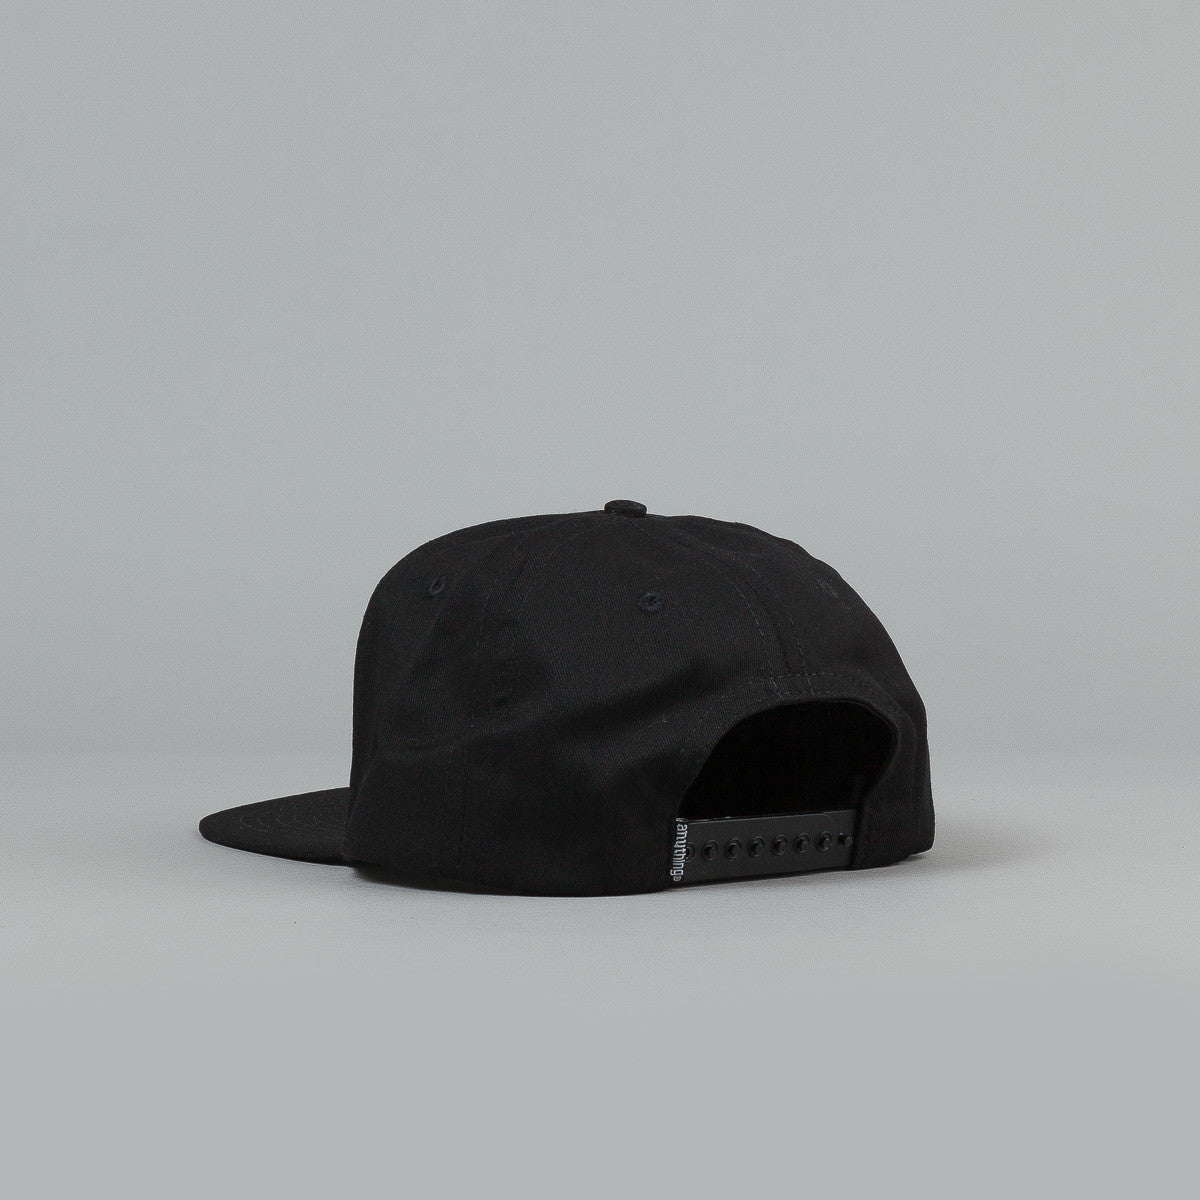 Anything Square Logo Snapback Cap Black